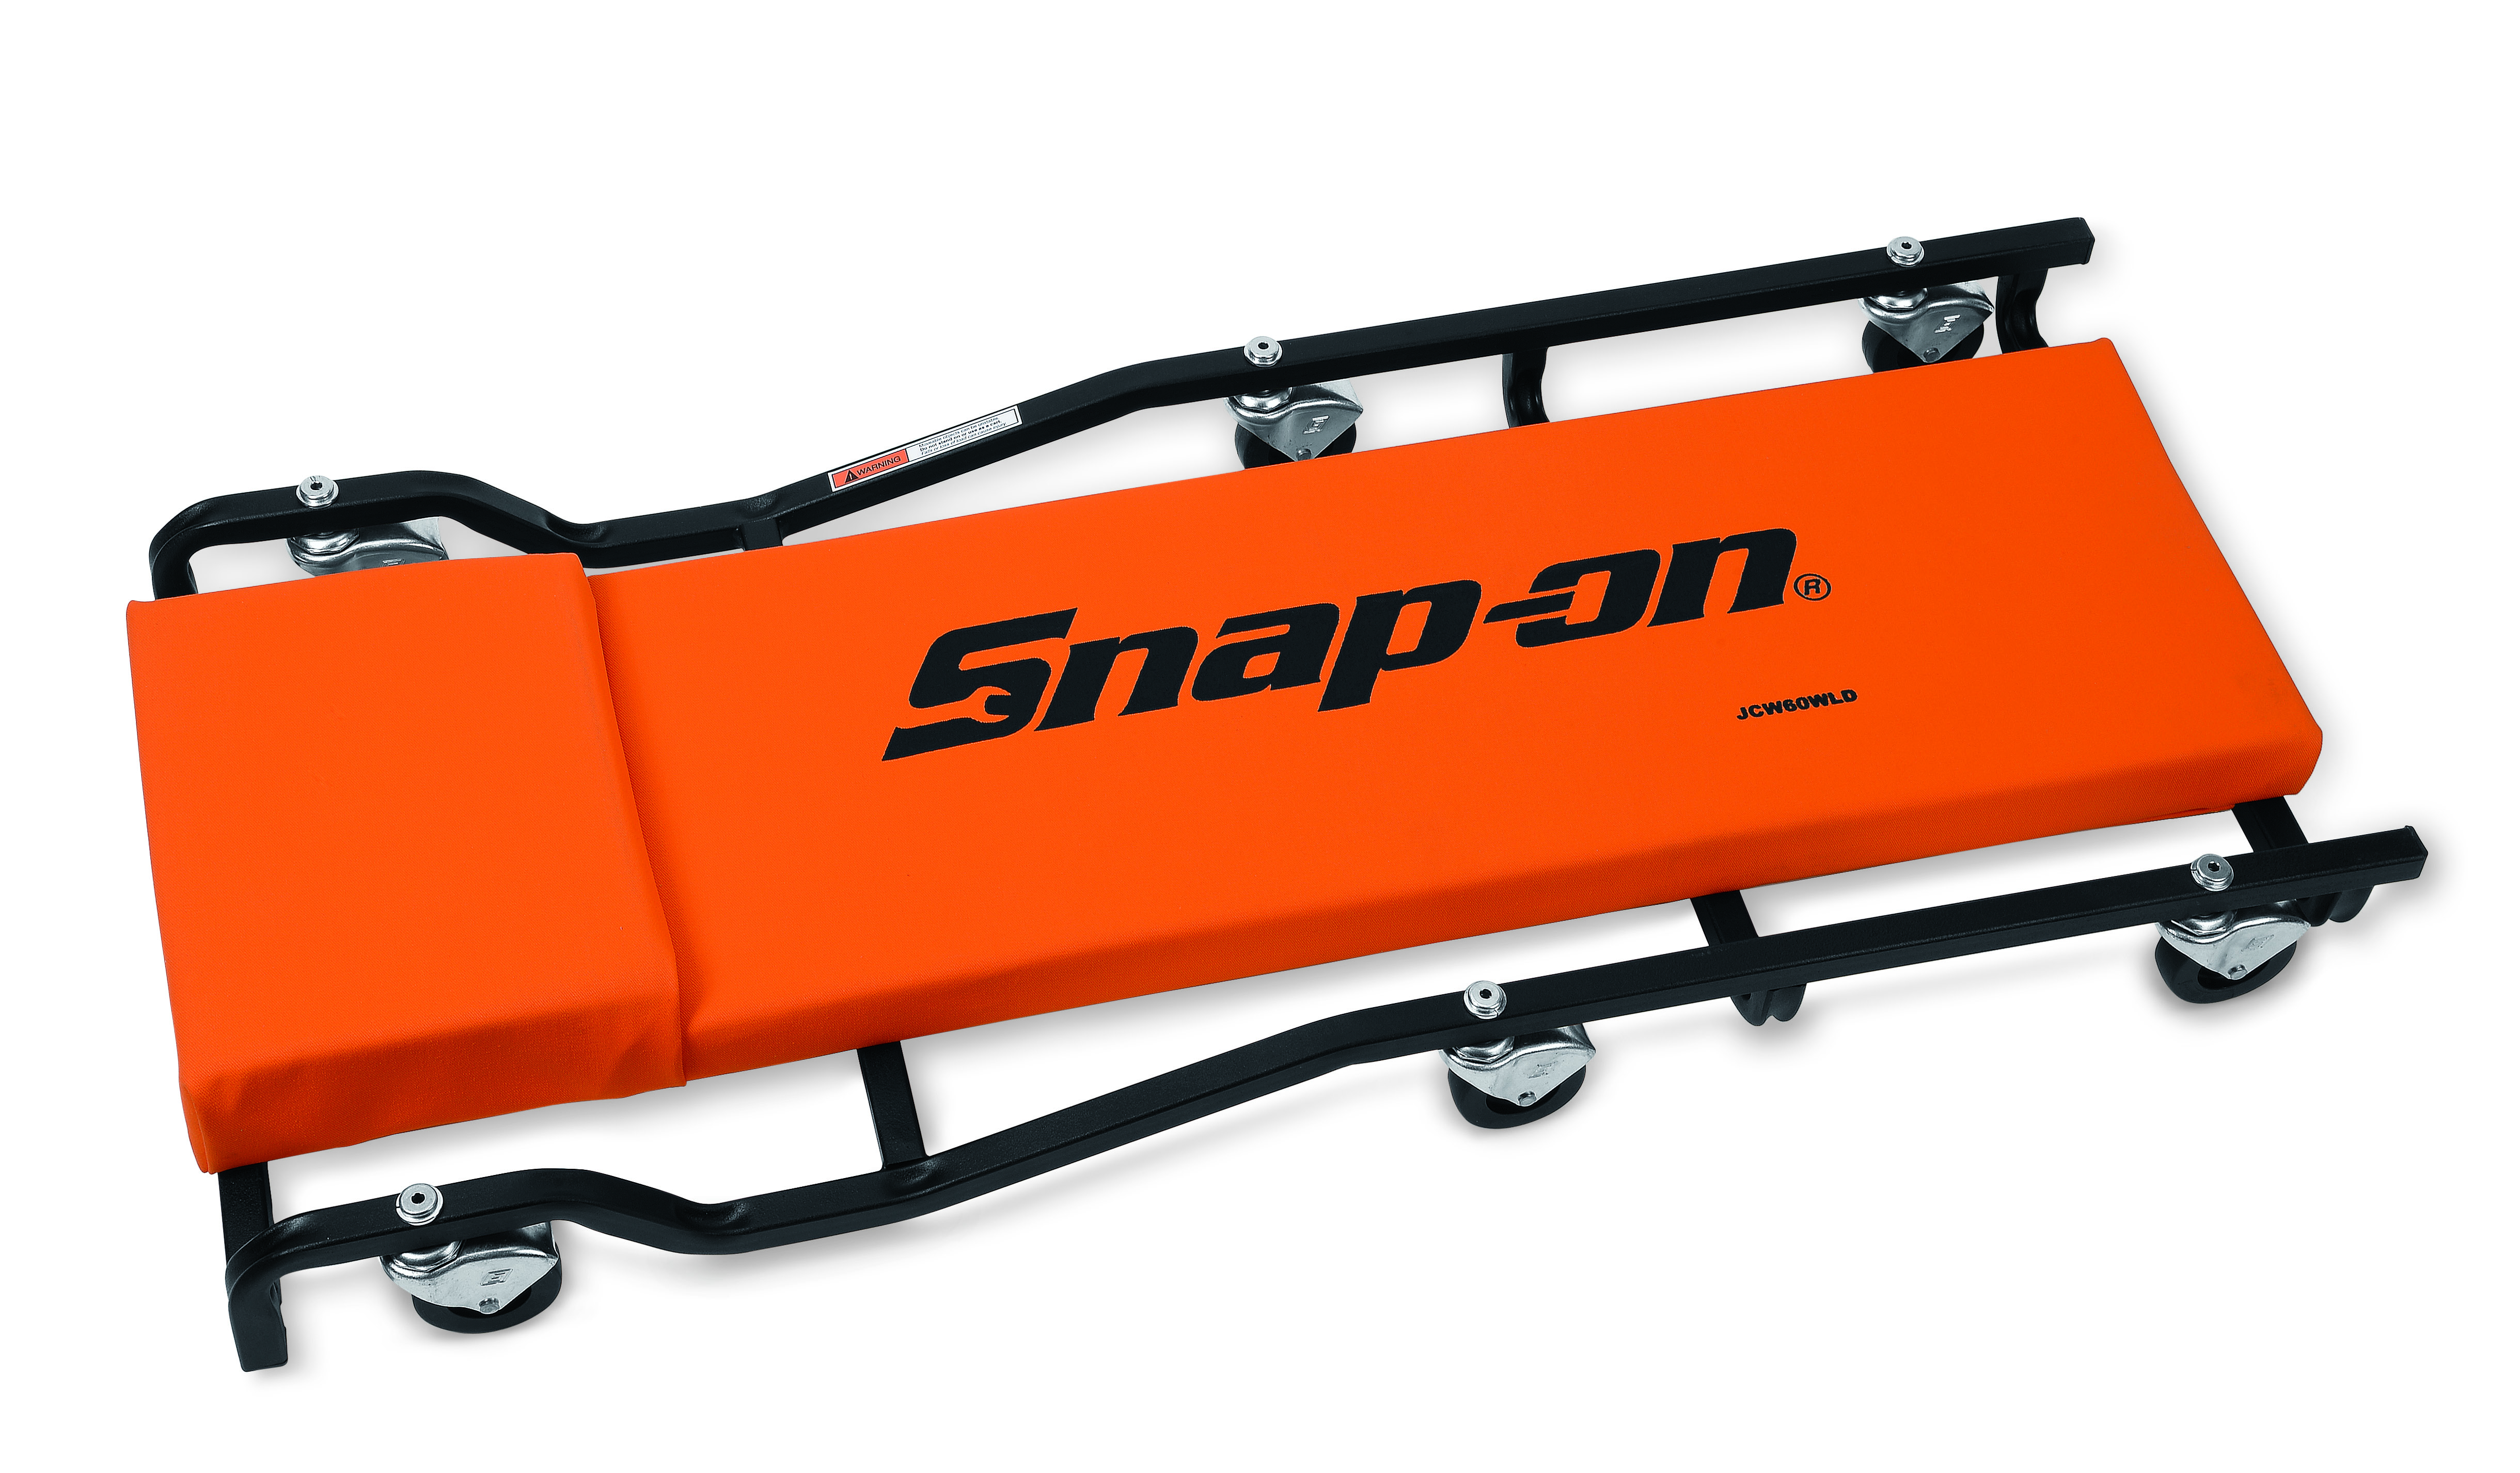 Snap-on Welding Creeper is designed for safety